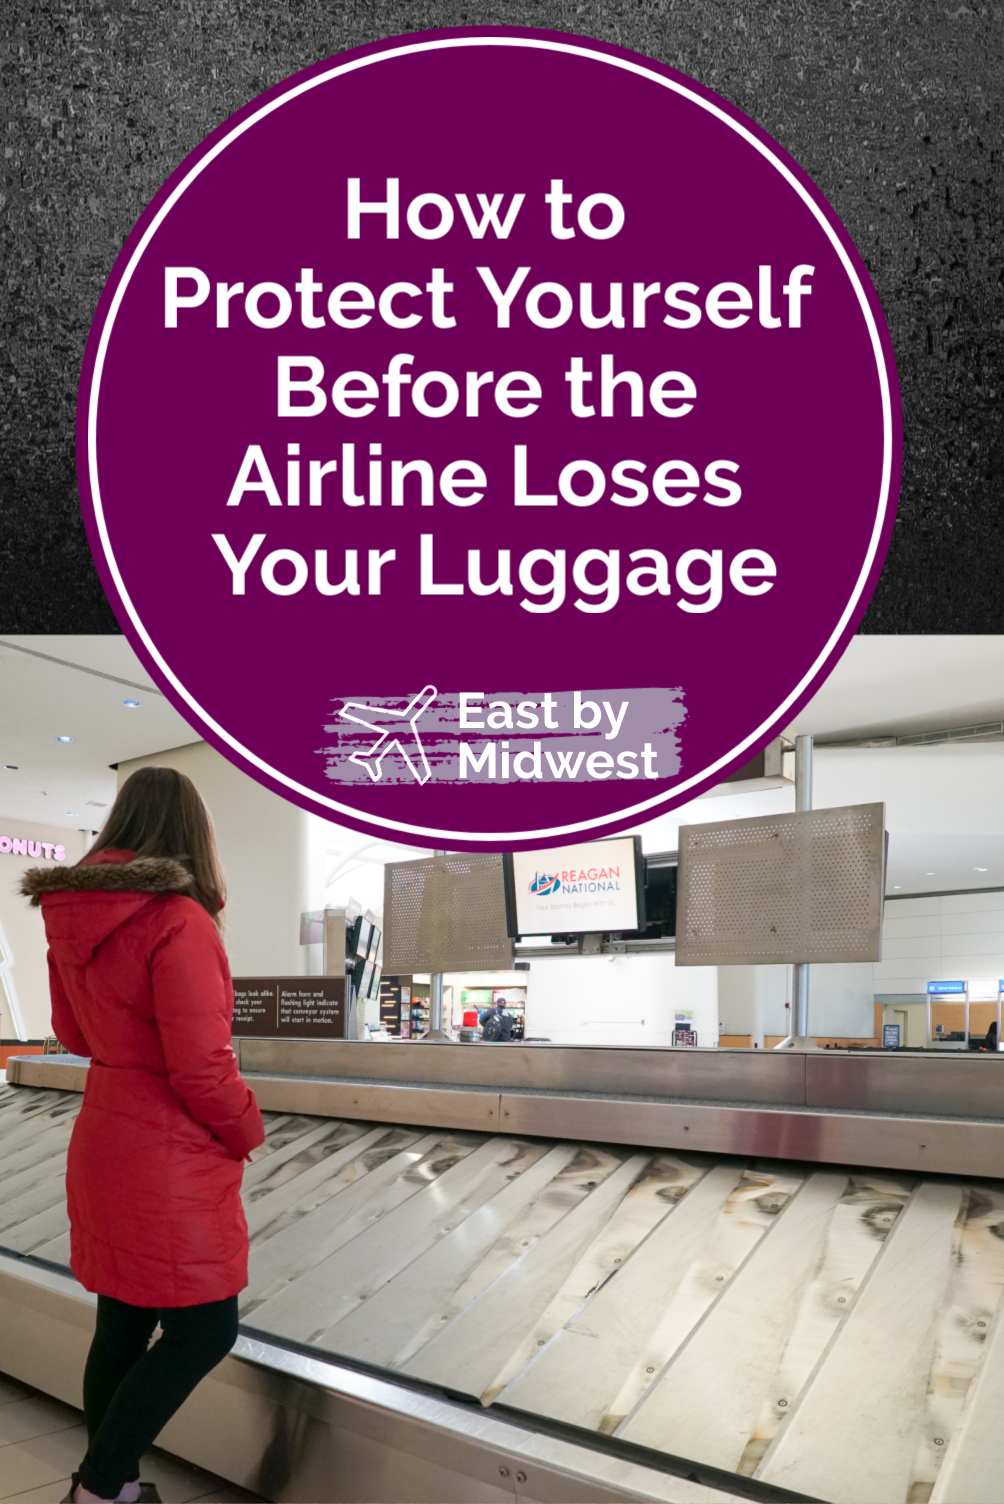 How to Protect Yourself Before the Airline Loses Your Luggage